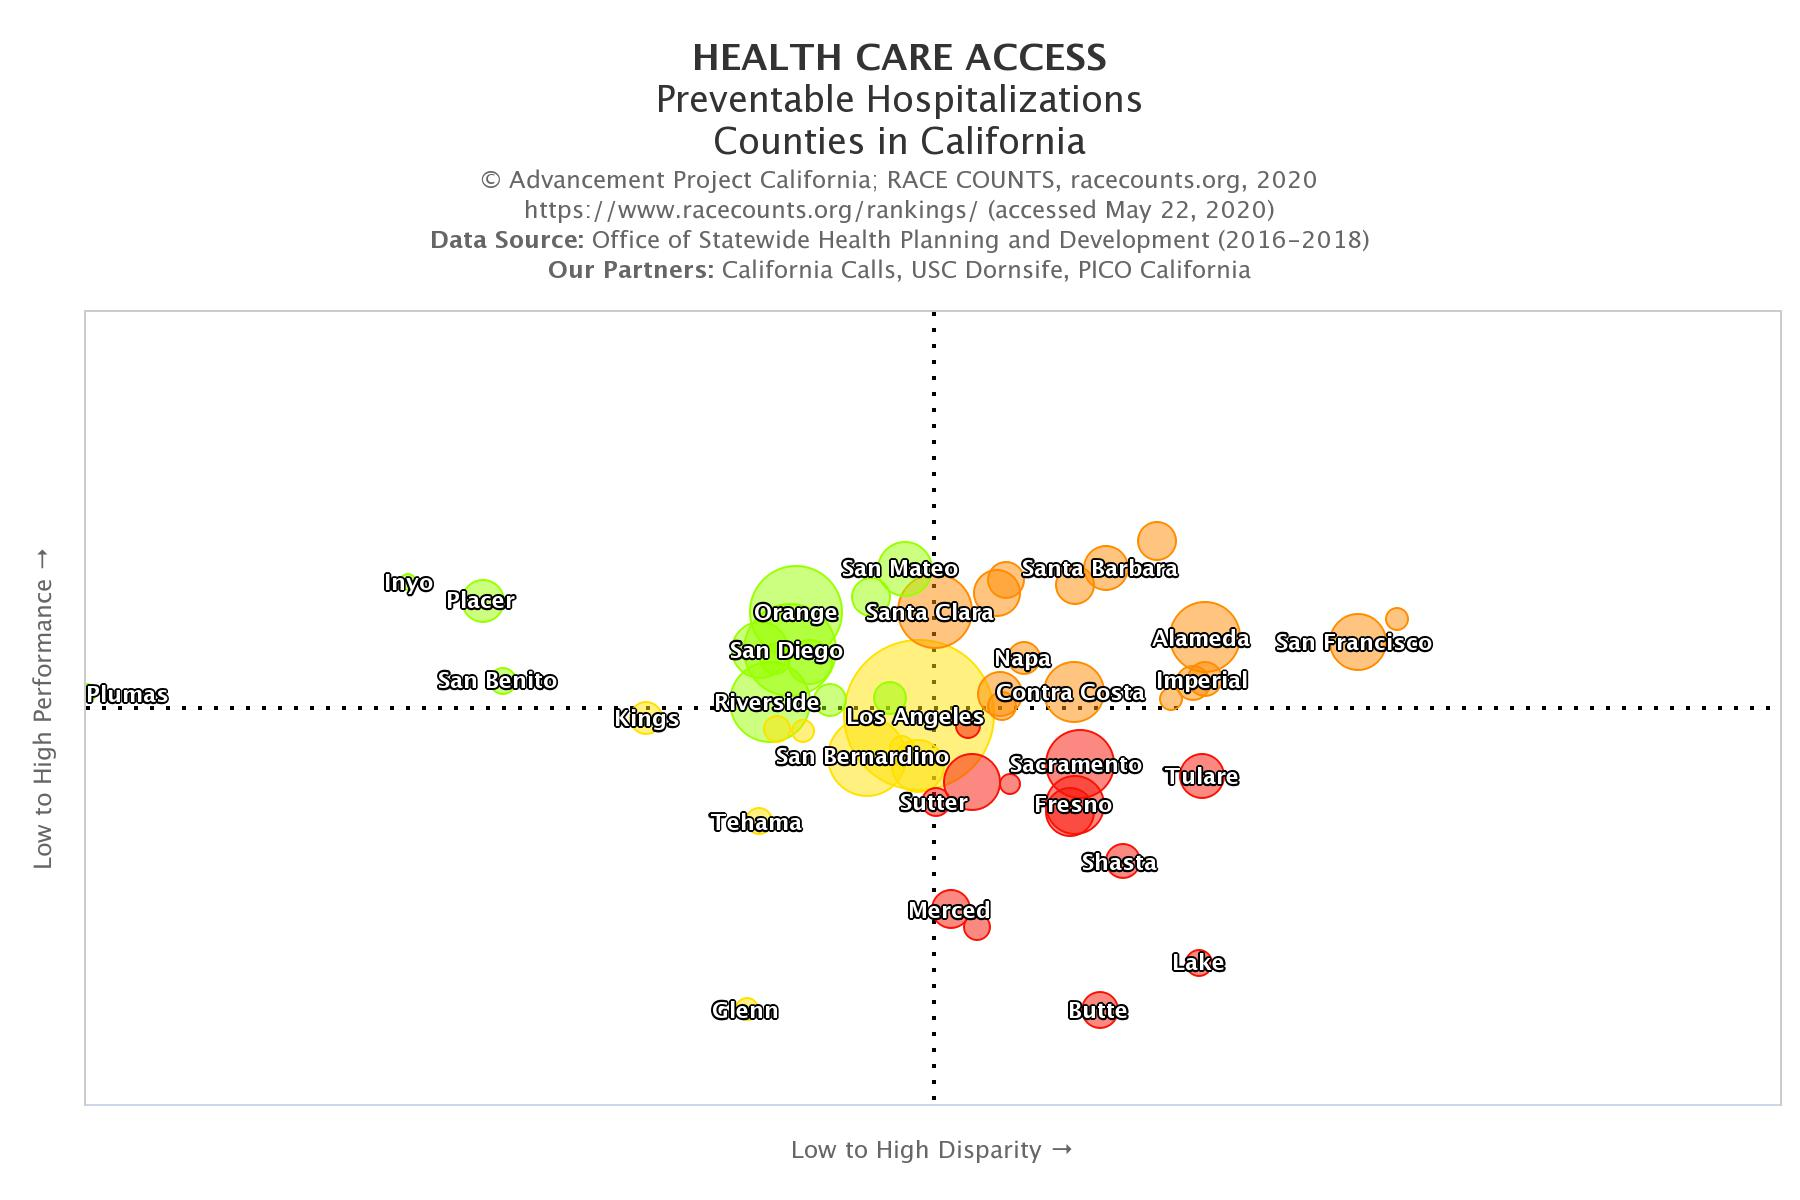 racecounts-health-care-access-preventable hospitalizations-counties